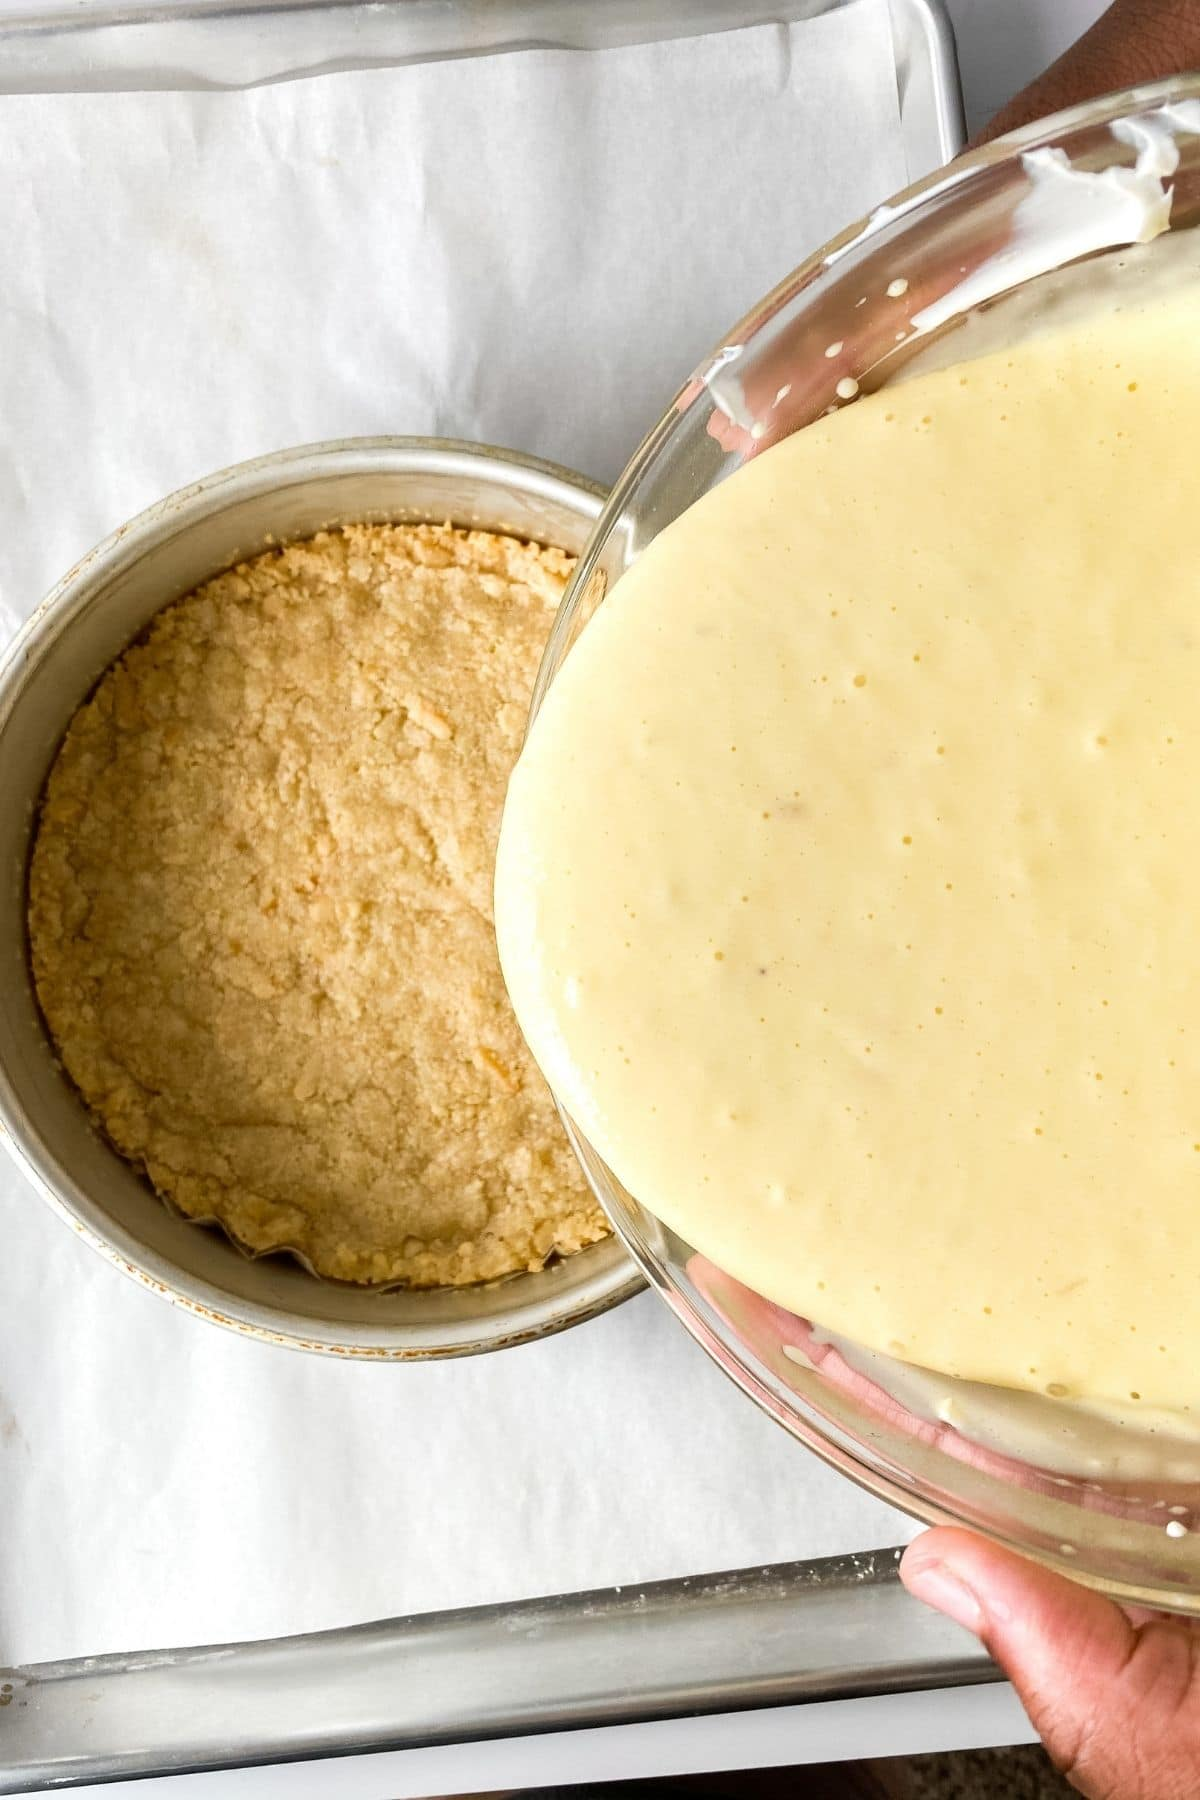 Pouring cheesecake batter in pan